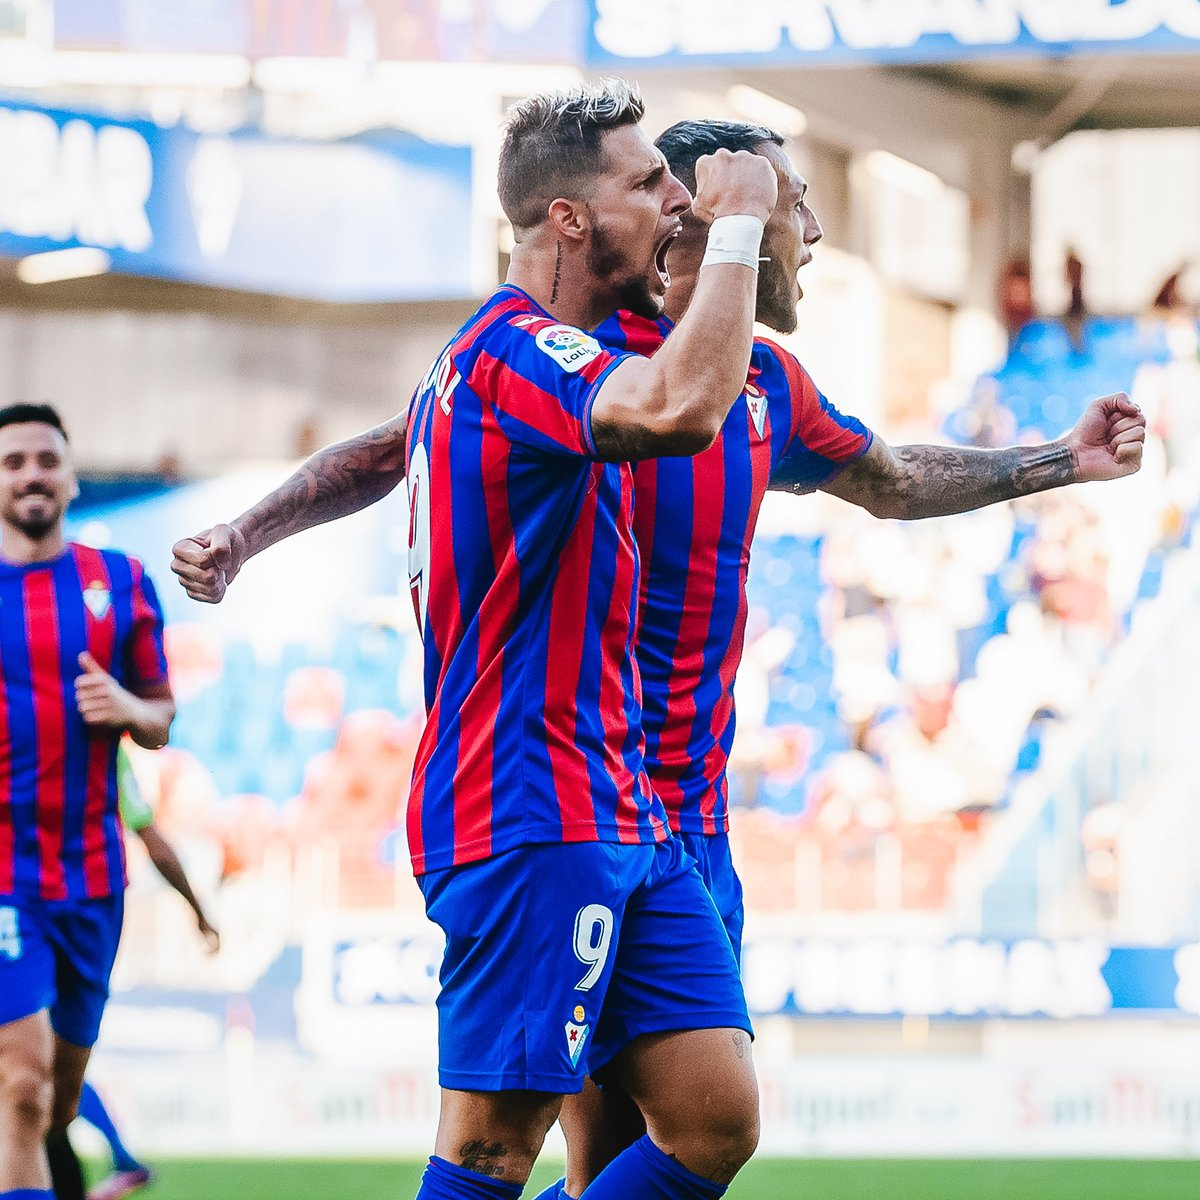 😍 Epic game 💙❤️